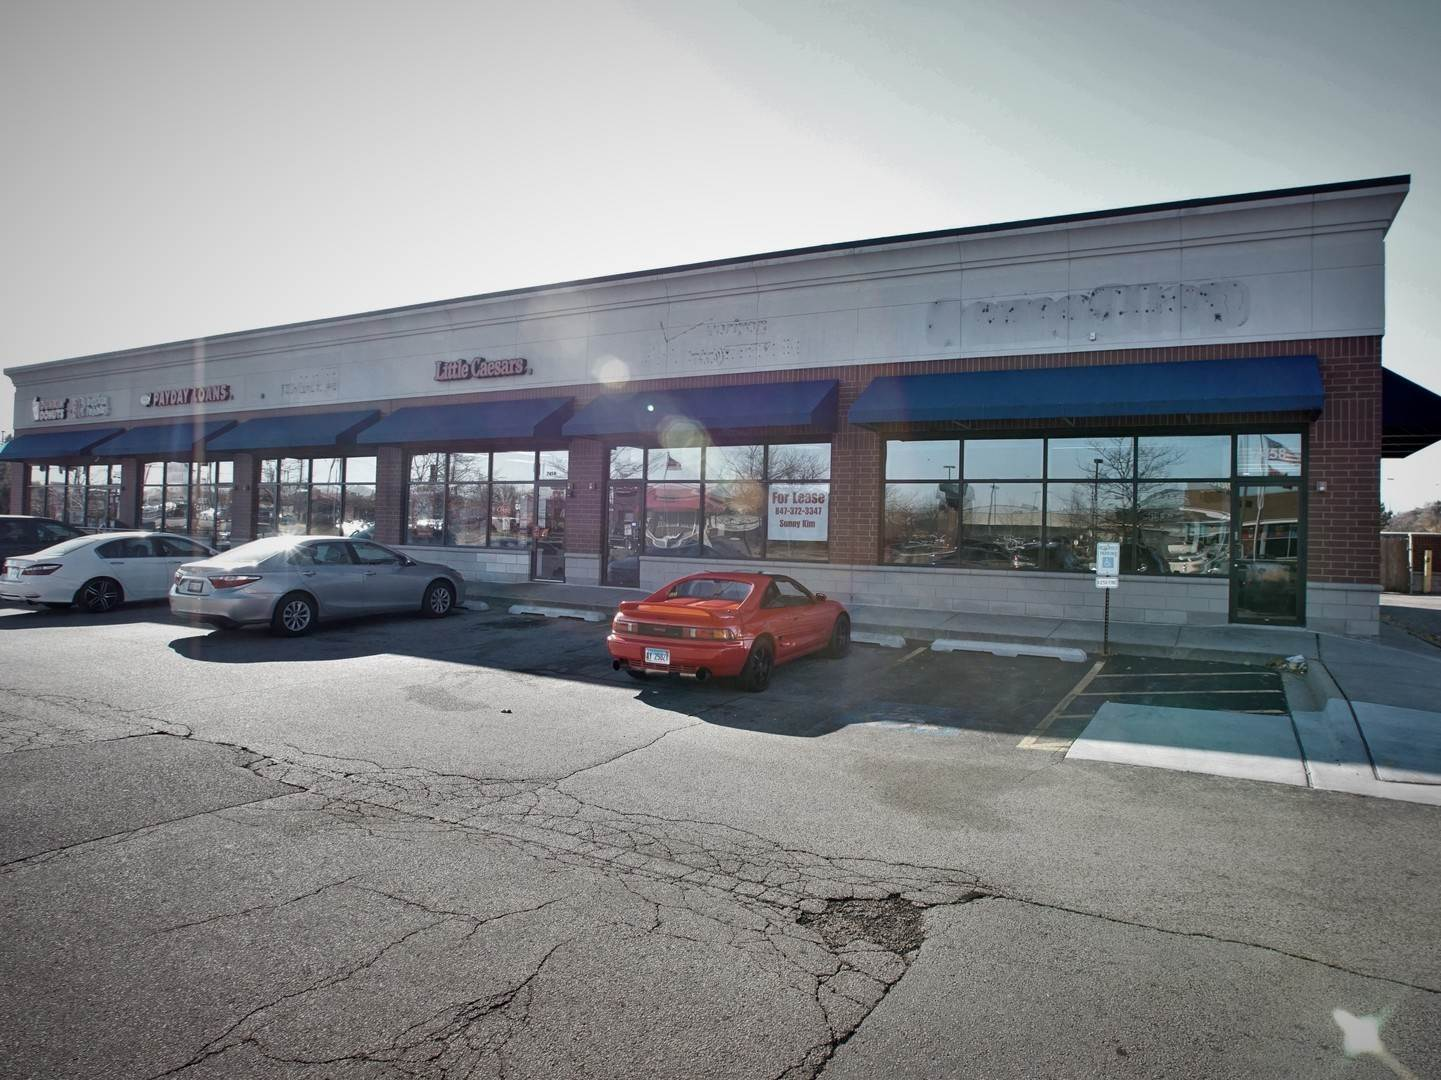 Commerciale alle 7452 Barrington Road Hanover Park, Illinois 60133 Stati Uniti